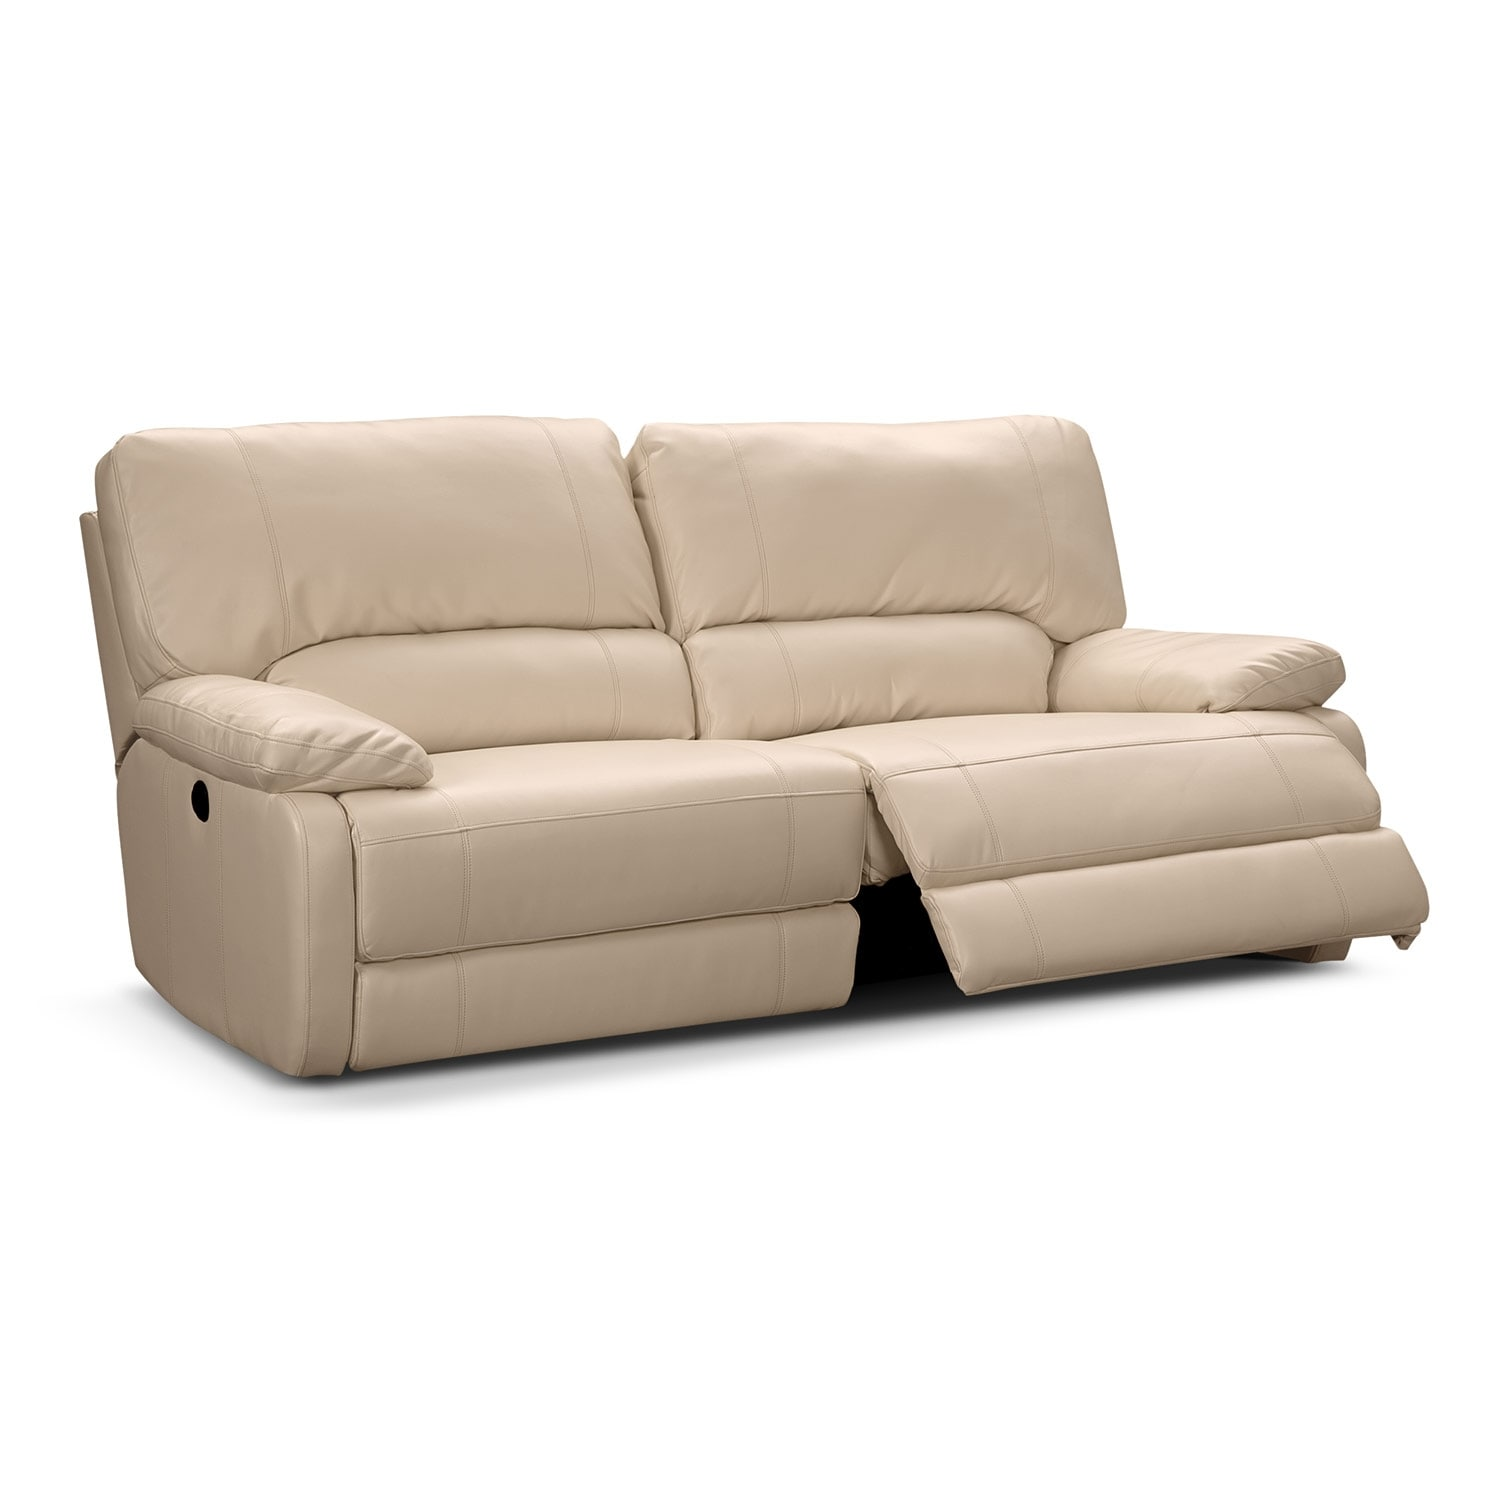 Coronado leather power reclining sofa value city furniture Leather loveseat recliners